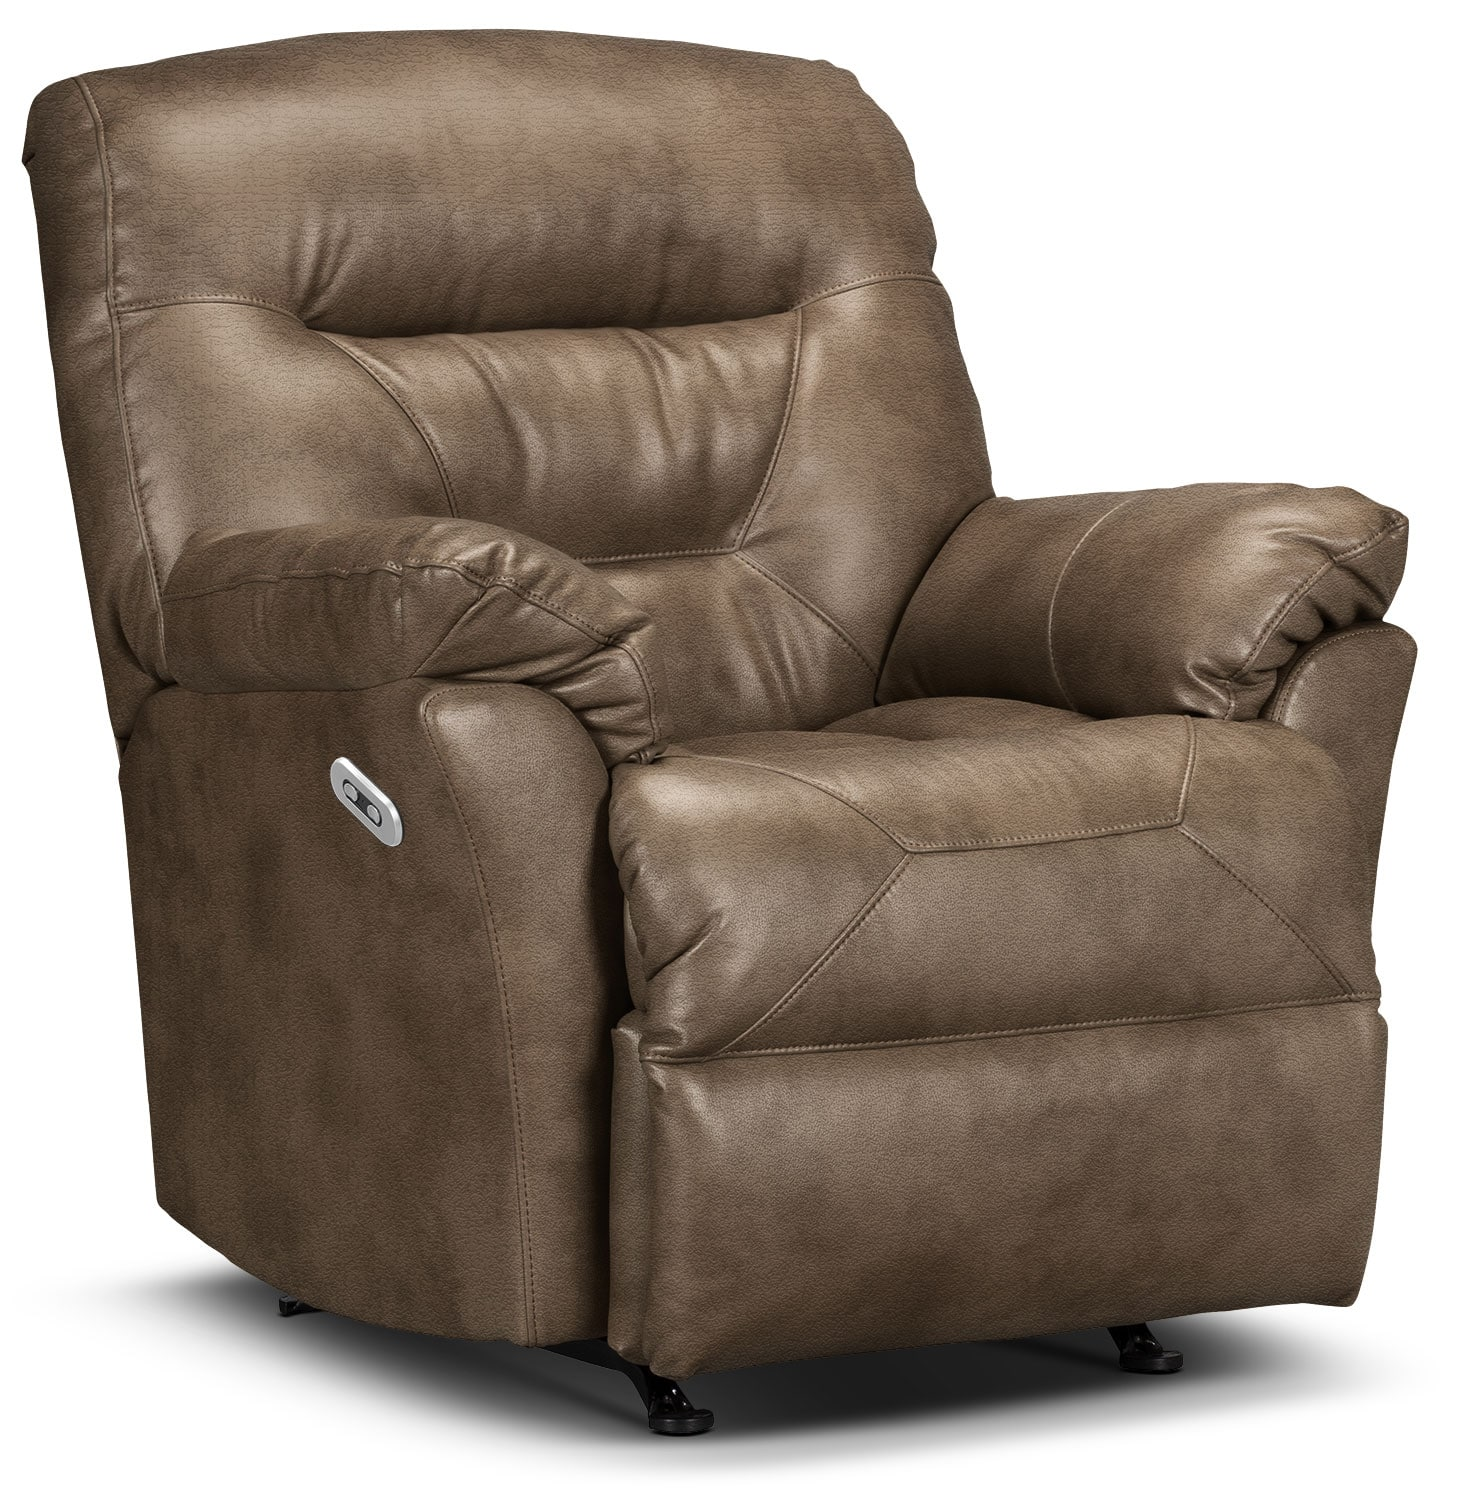 Designed2B Recliner 4579 Leather-Look Fabric Power Recliner - Tobacco